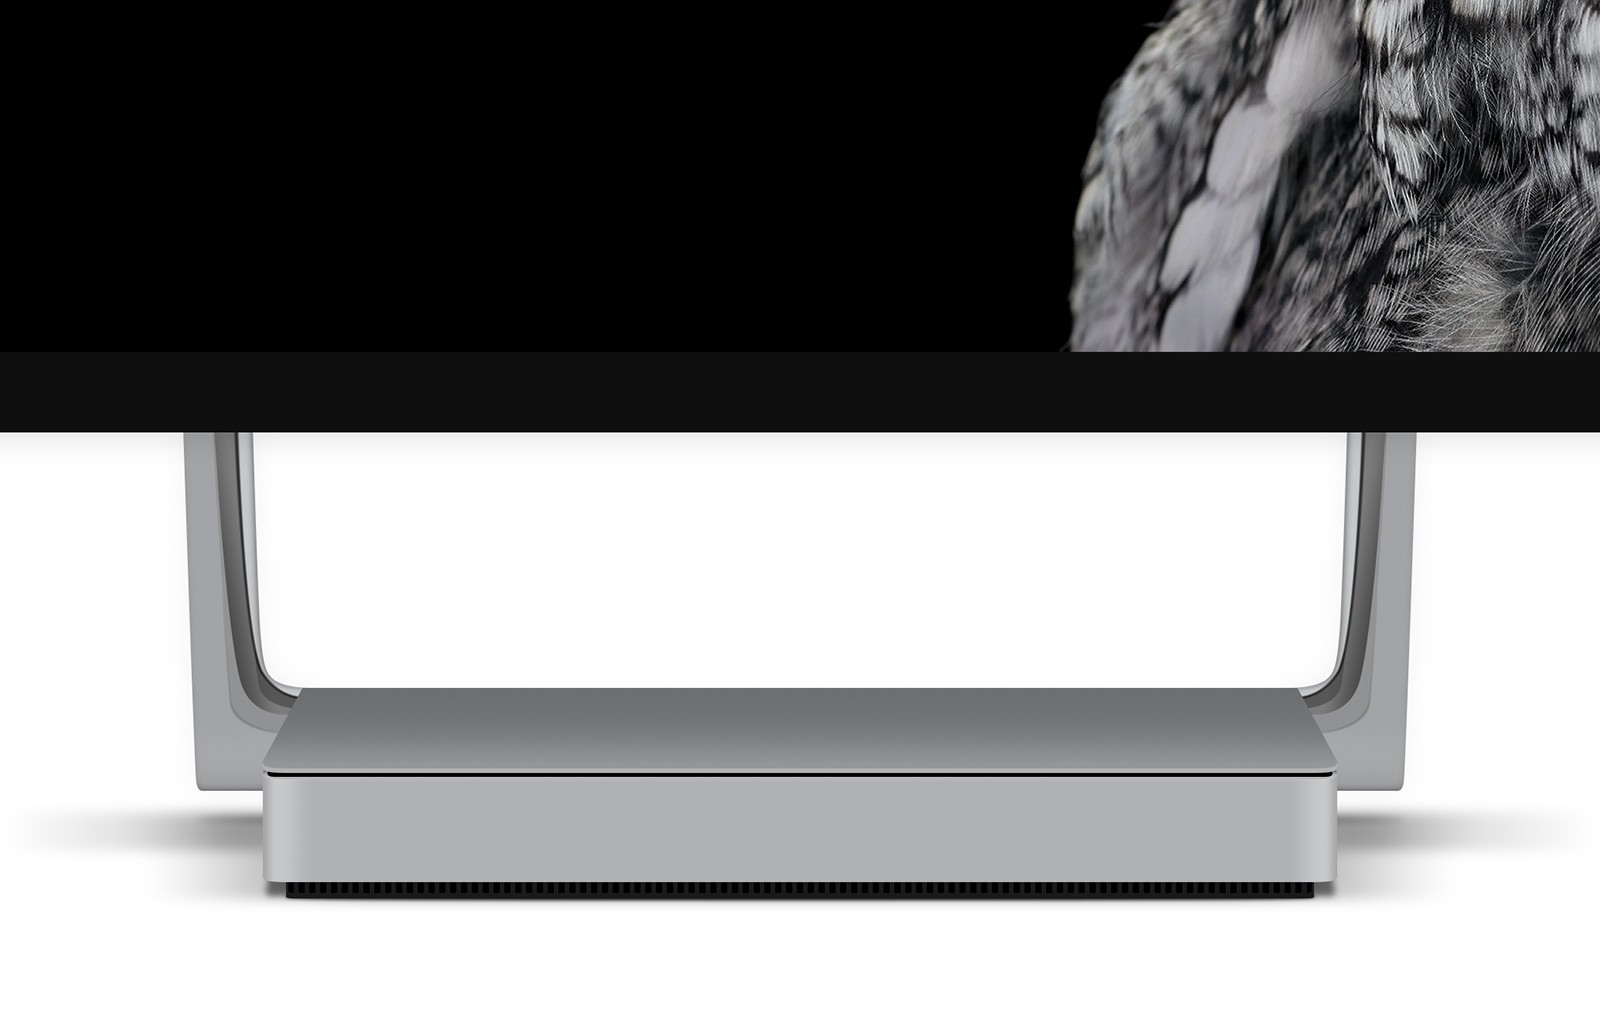 Large Surface  Studio  Mockup  Preview 2